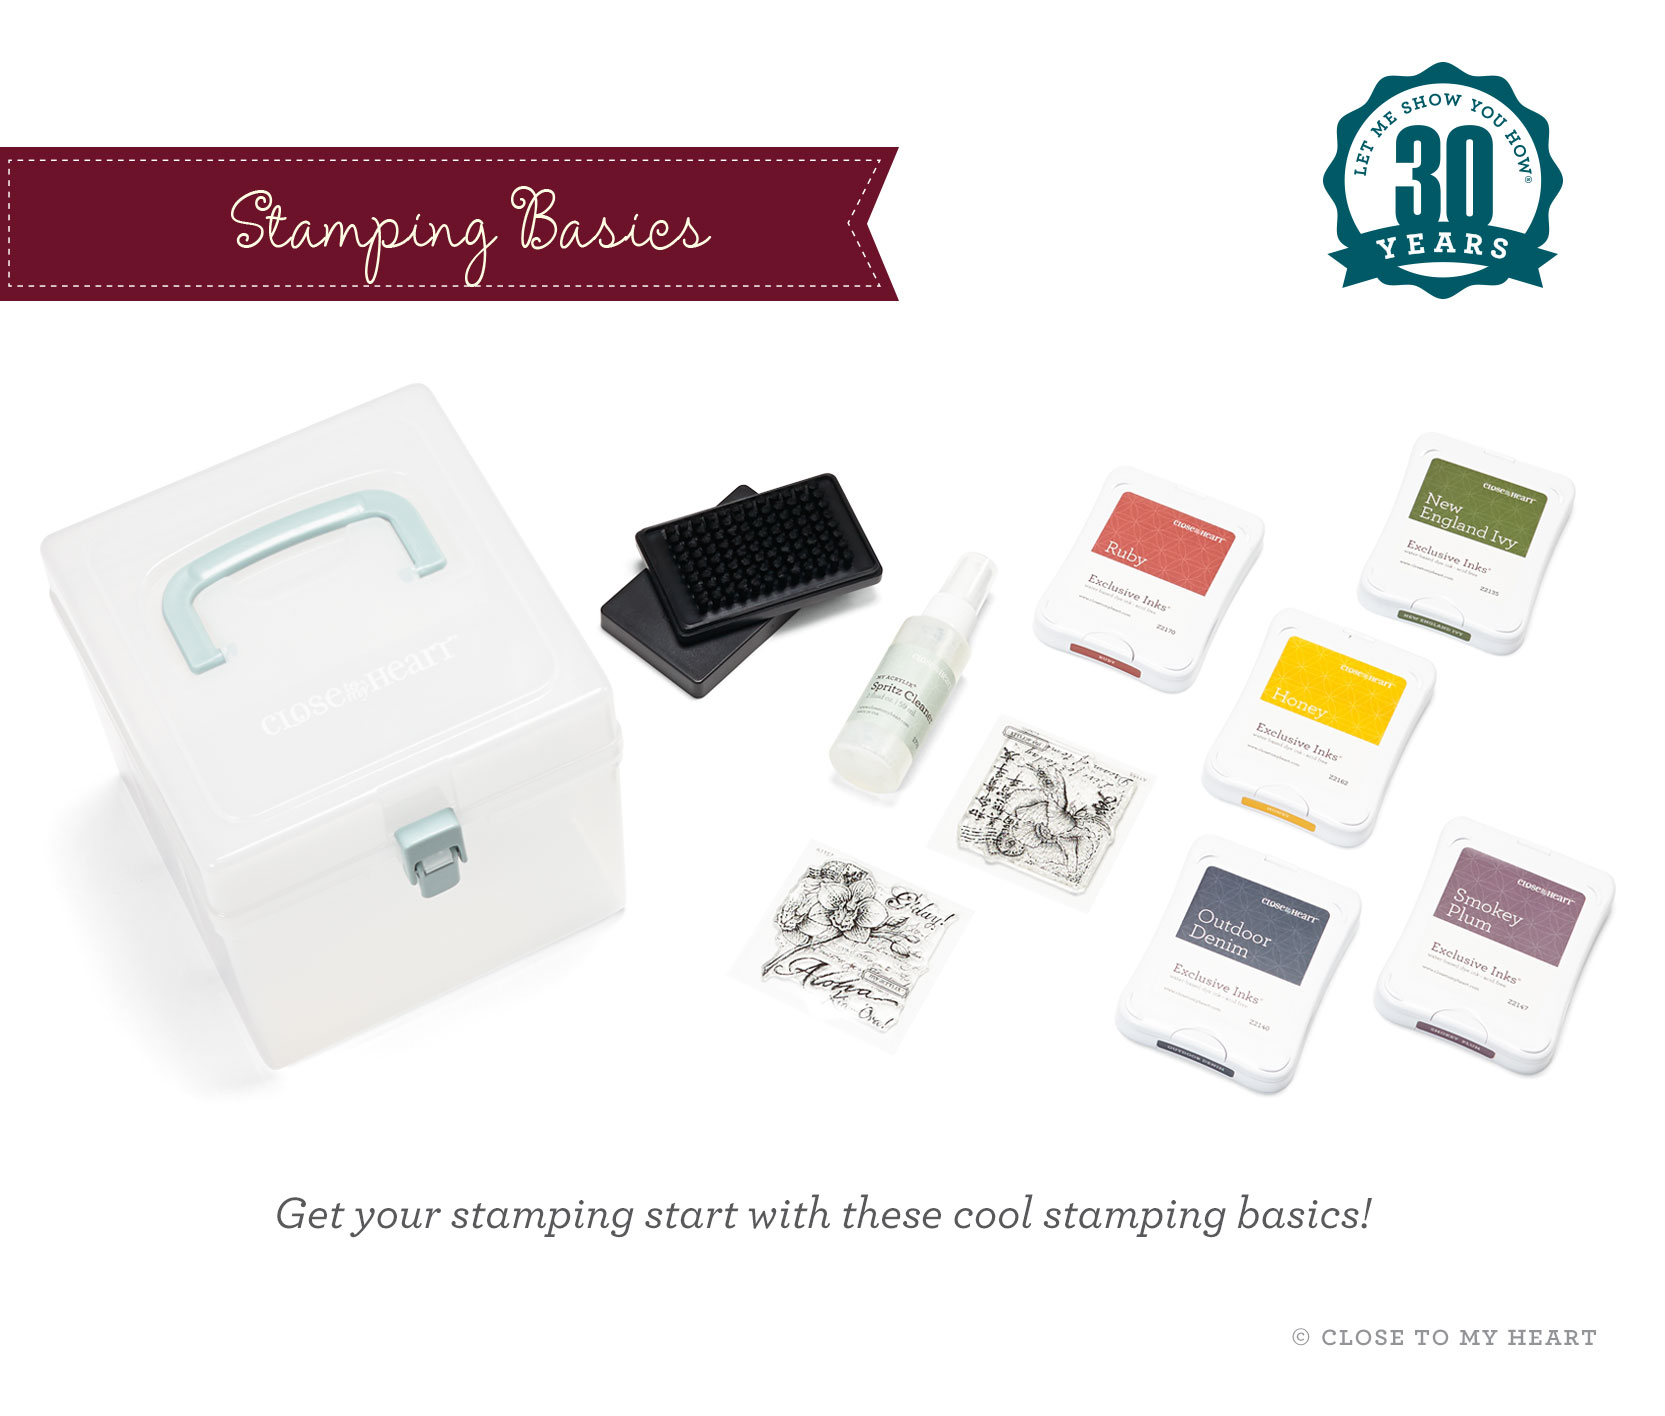 Stamping Basics Collection